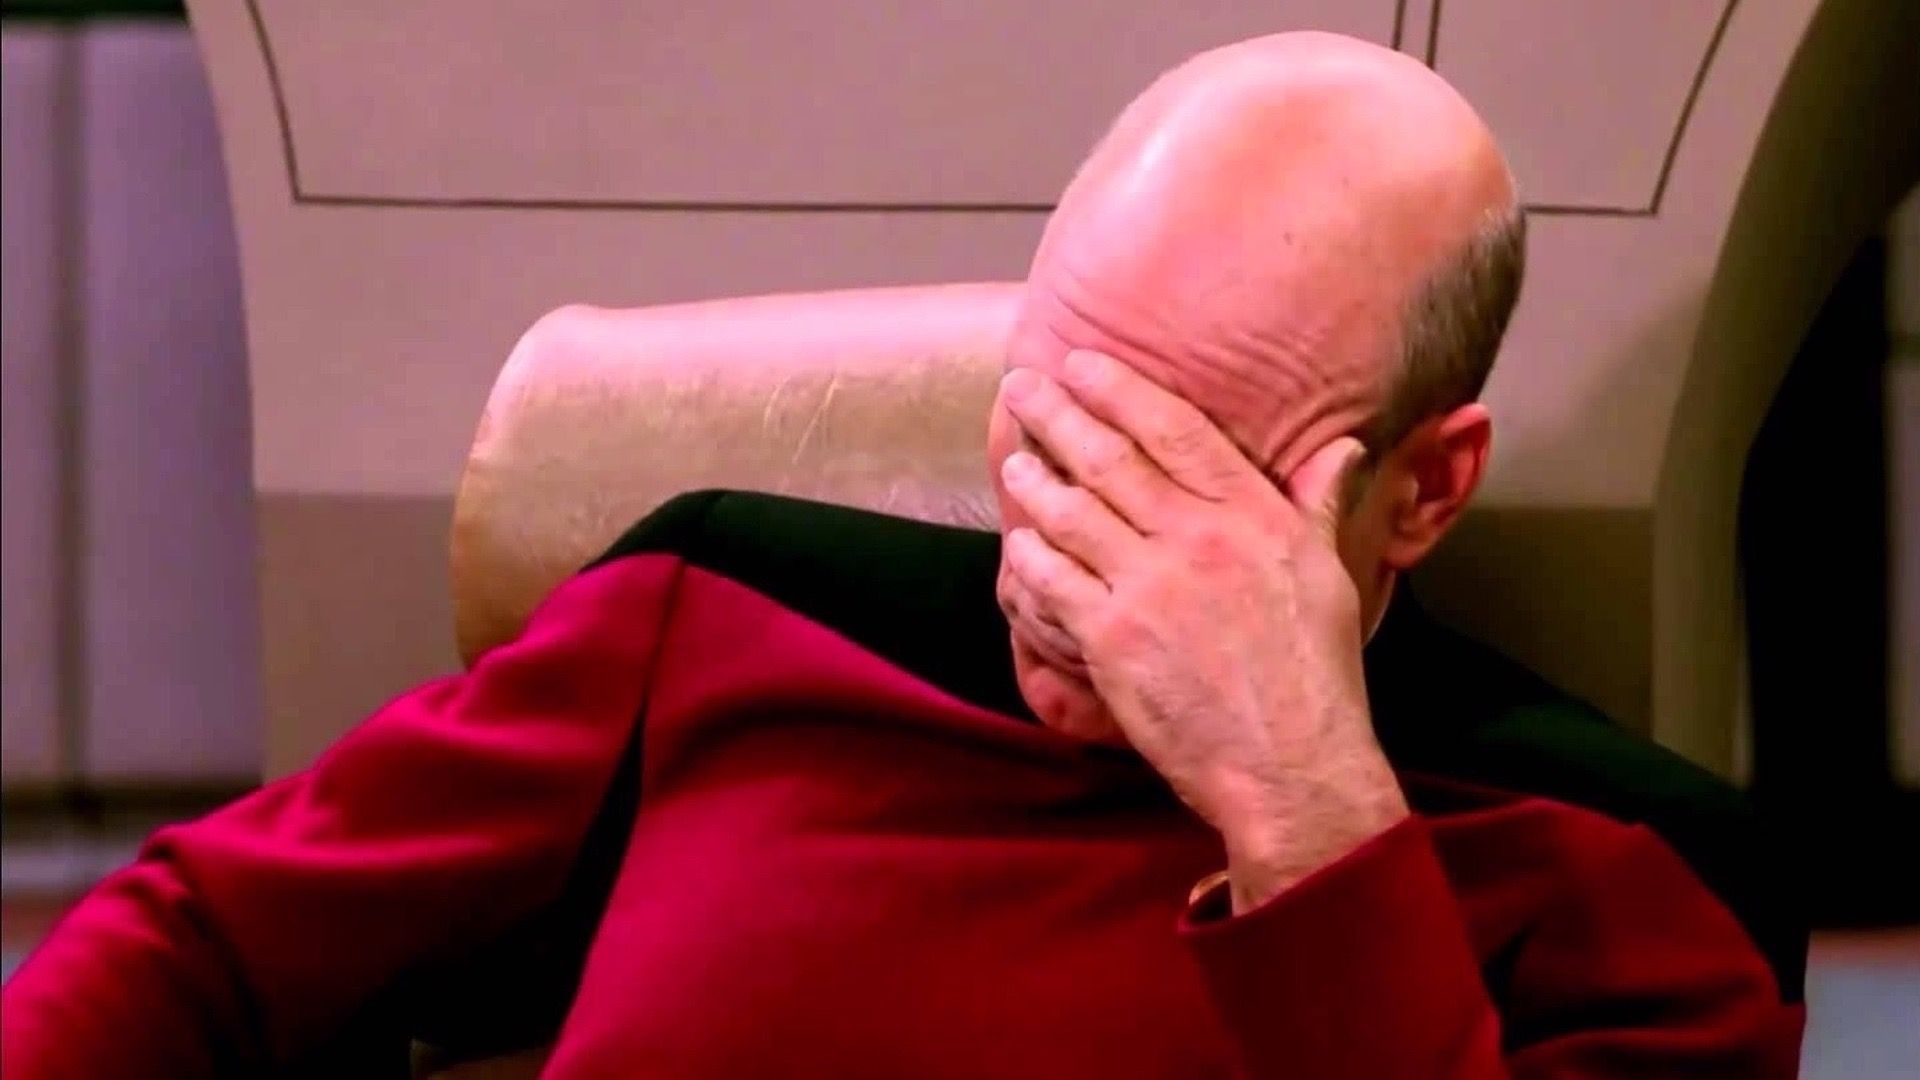 The Star Trek facepalm meme.